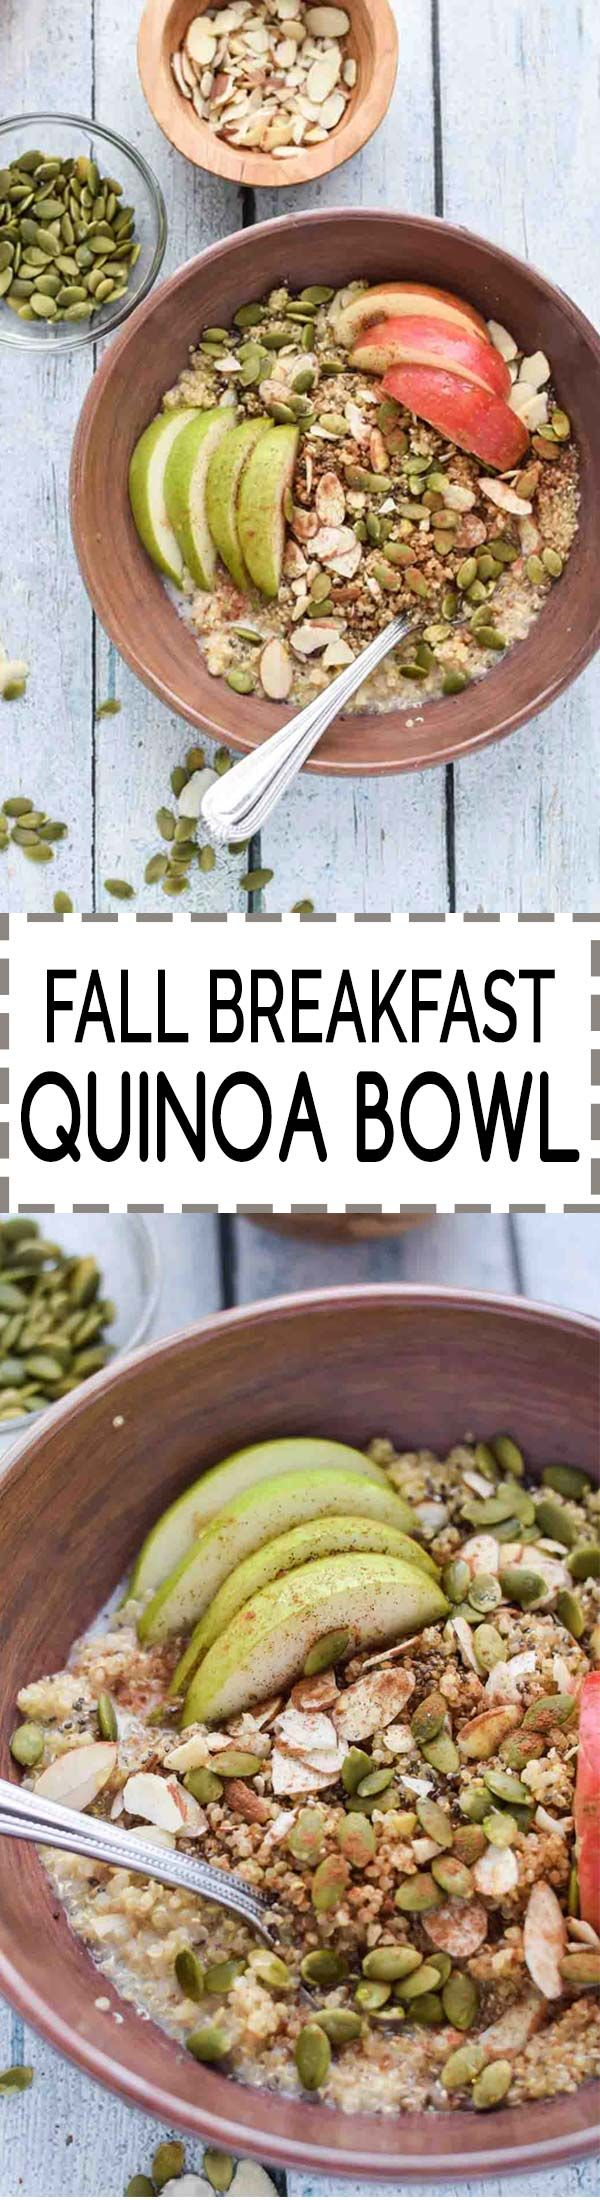 Fall Breakfast Quinoa Bowl! Vegan, vegetarian, gluten-free, only takes 10 minutes to make!